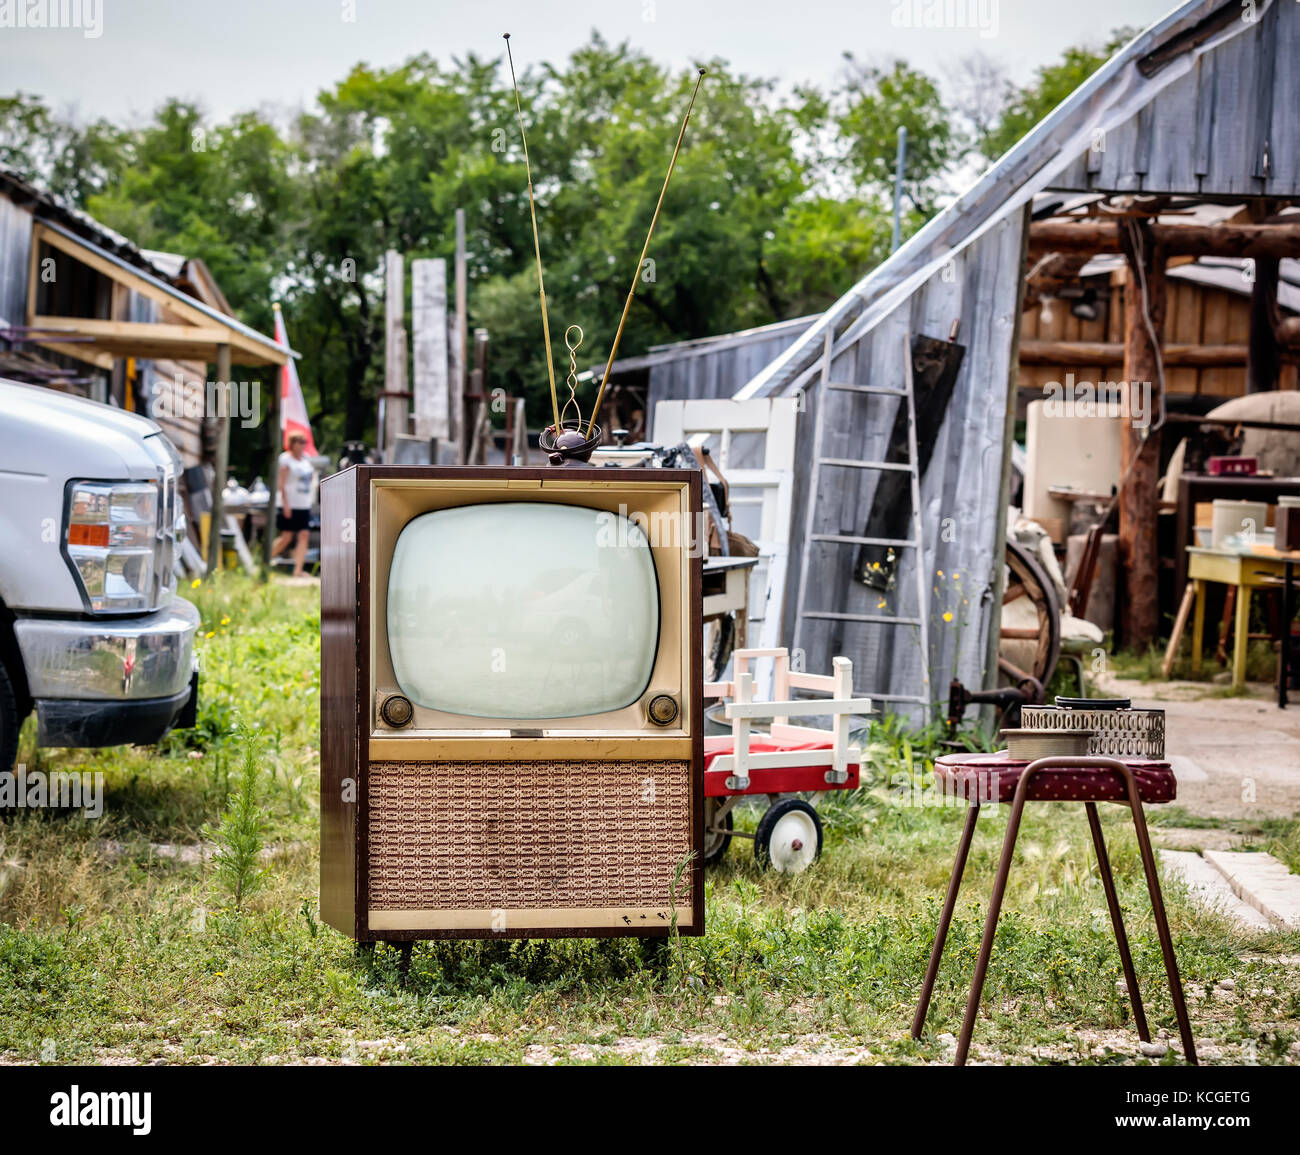 A vintage television and other items at an outdoor Flea Market, Manitoba, Canada. - Stock Image